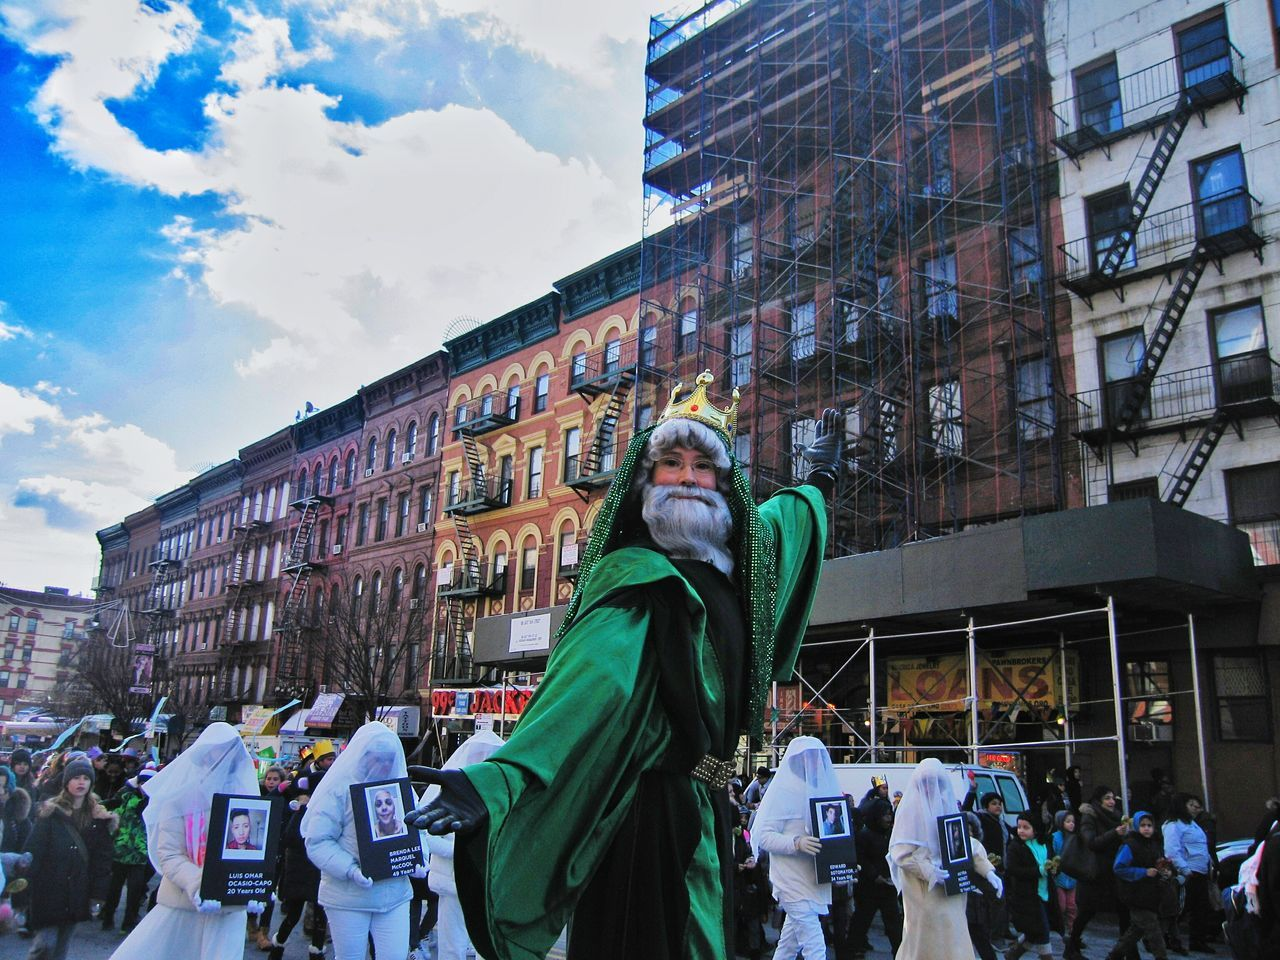 Three Kings Parade 2017 Stiltwalker El Barrio NYC Harlem, NYC